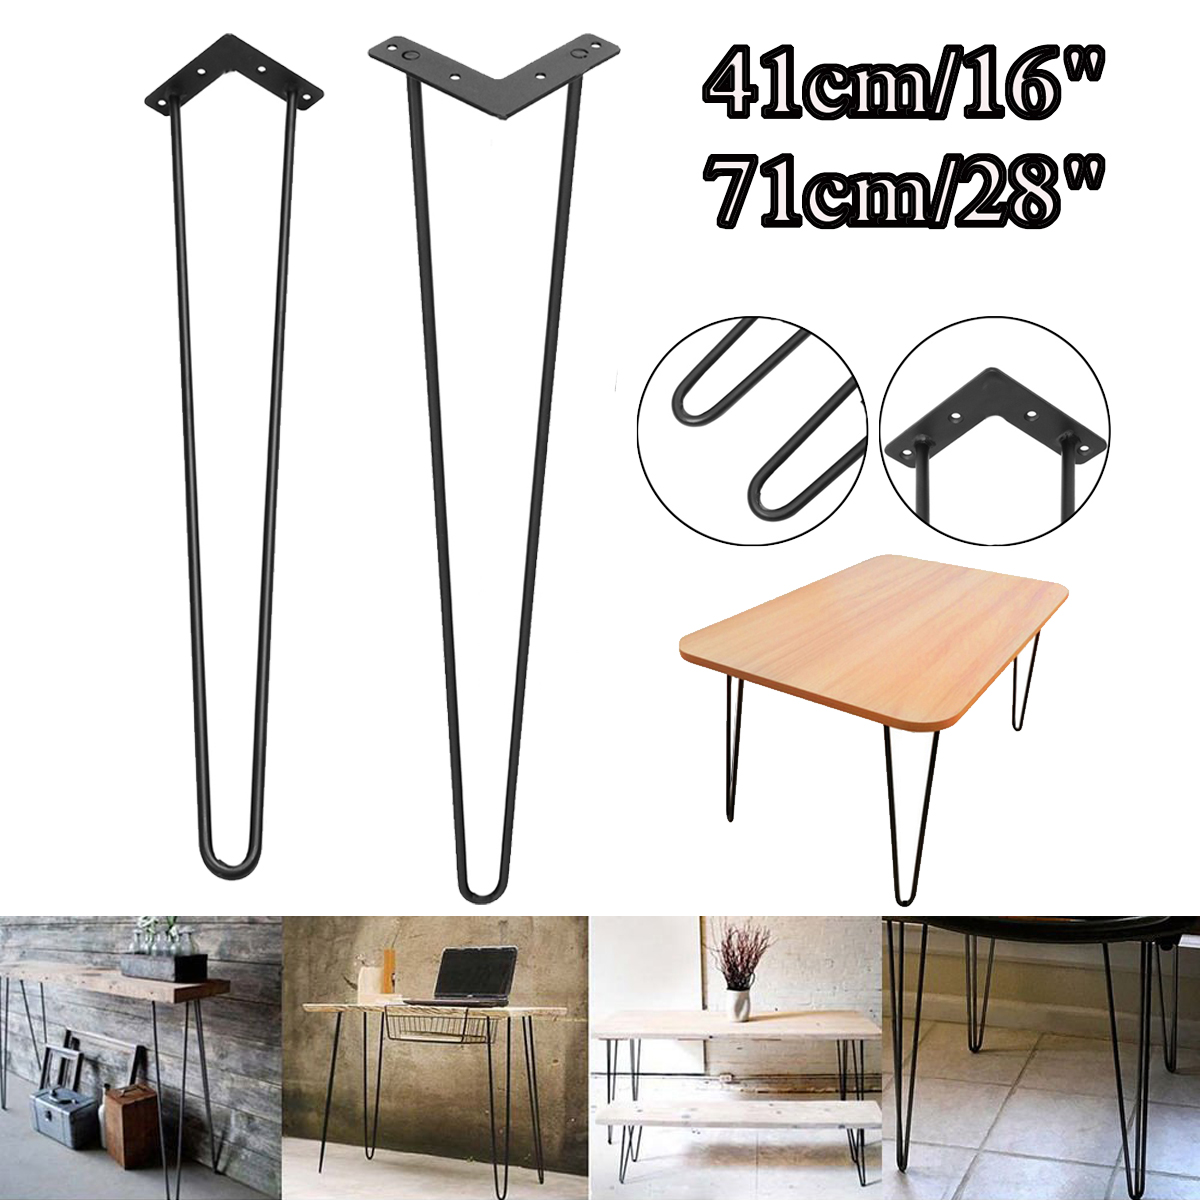 4x Hairpin Table Legs Set Home & Living 3 Rod Dining Table Bench Desk Steel Legs Size 21-71cm